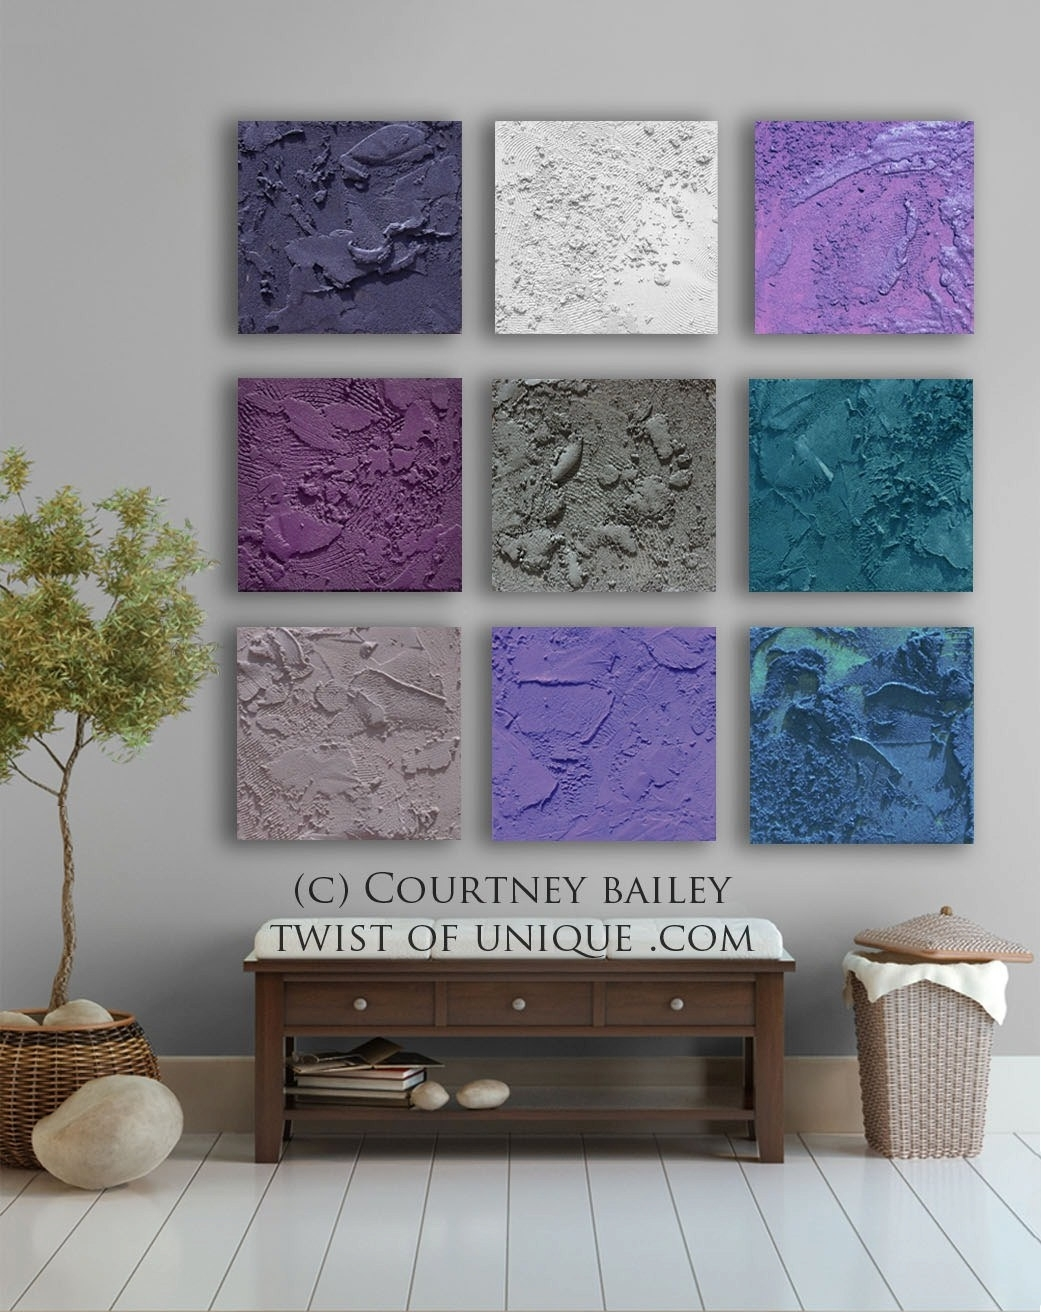 Square Abstract Painting, 9 Panel Custom Abstract Wall Art, Large With Regard To Most Up To Date Gray Abstract Wall Art (View 16 of 20)